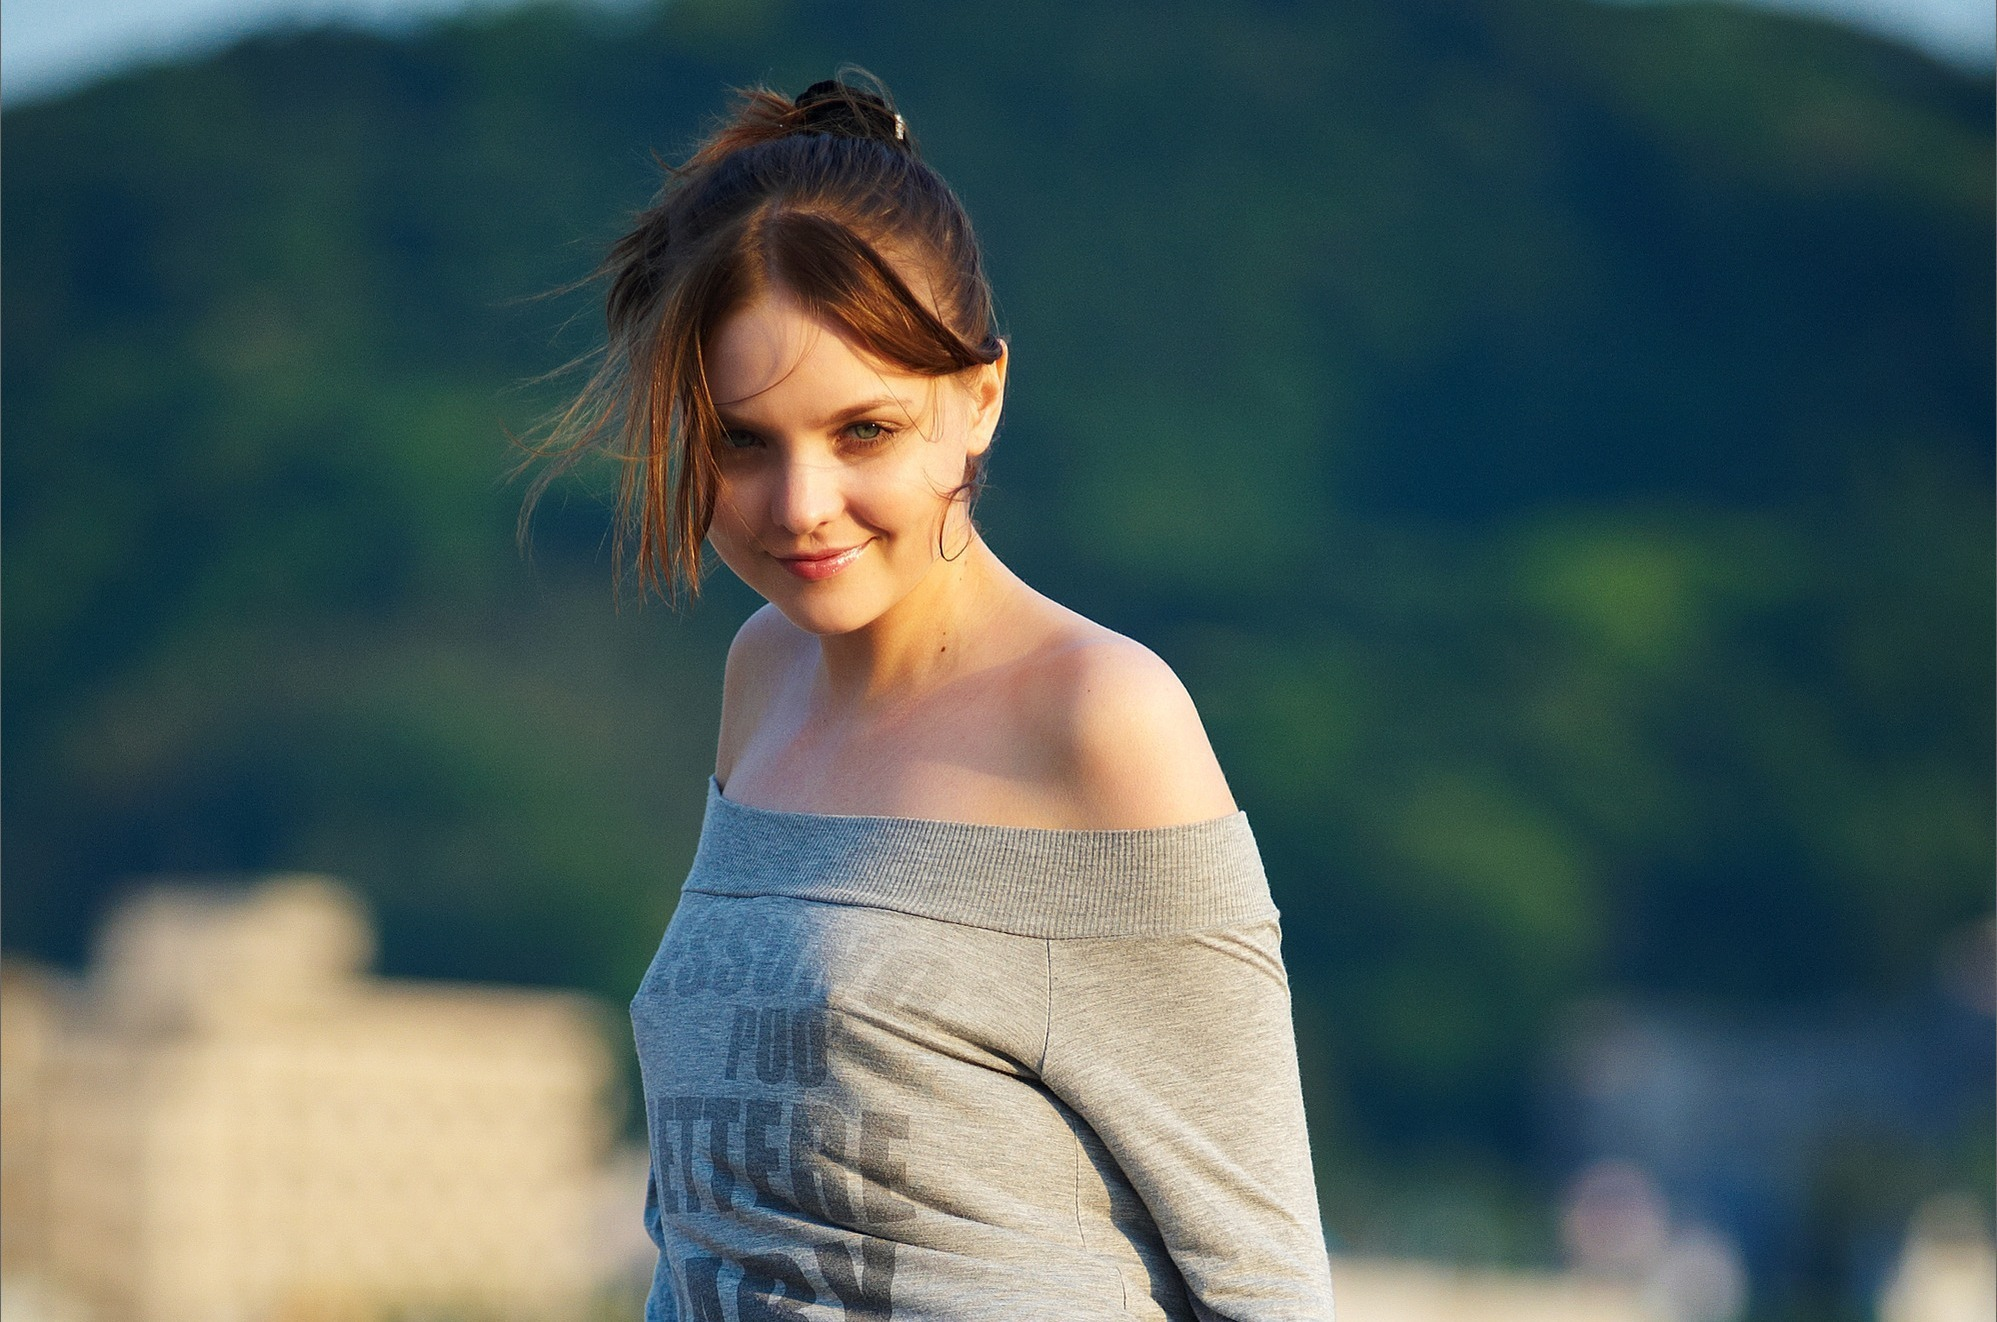 bilatinmen sex glass girl